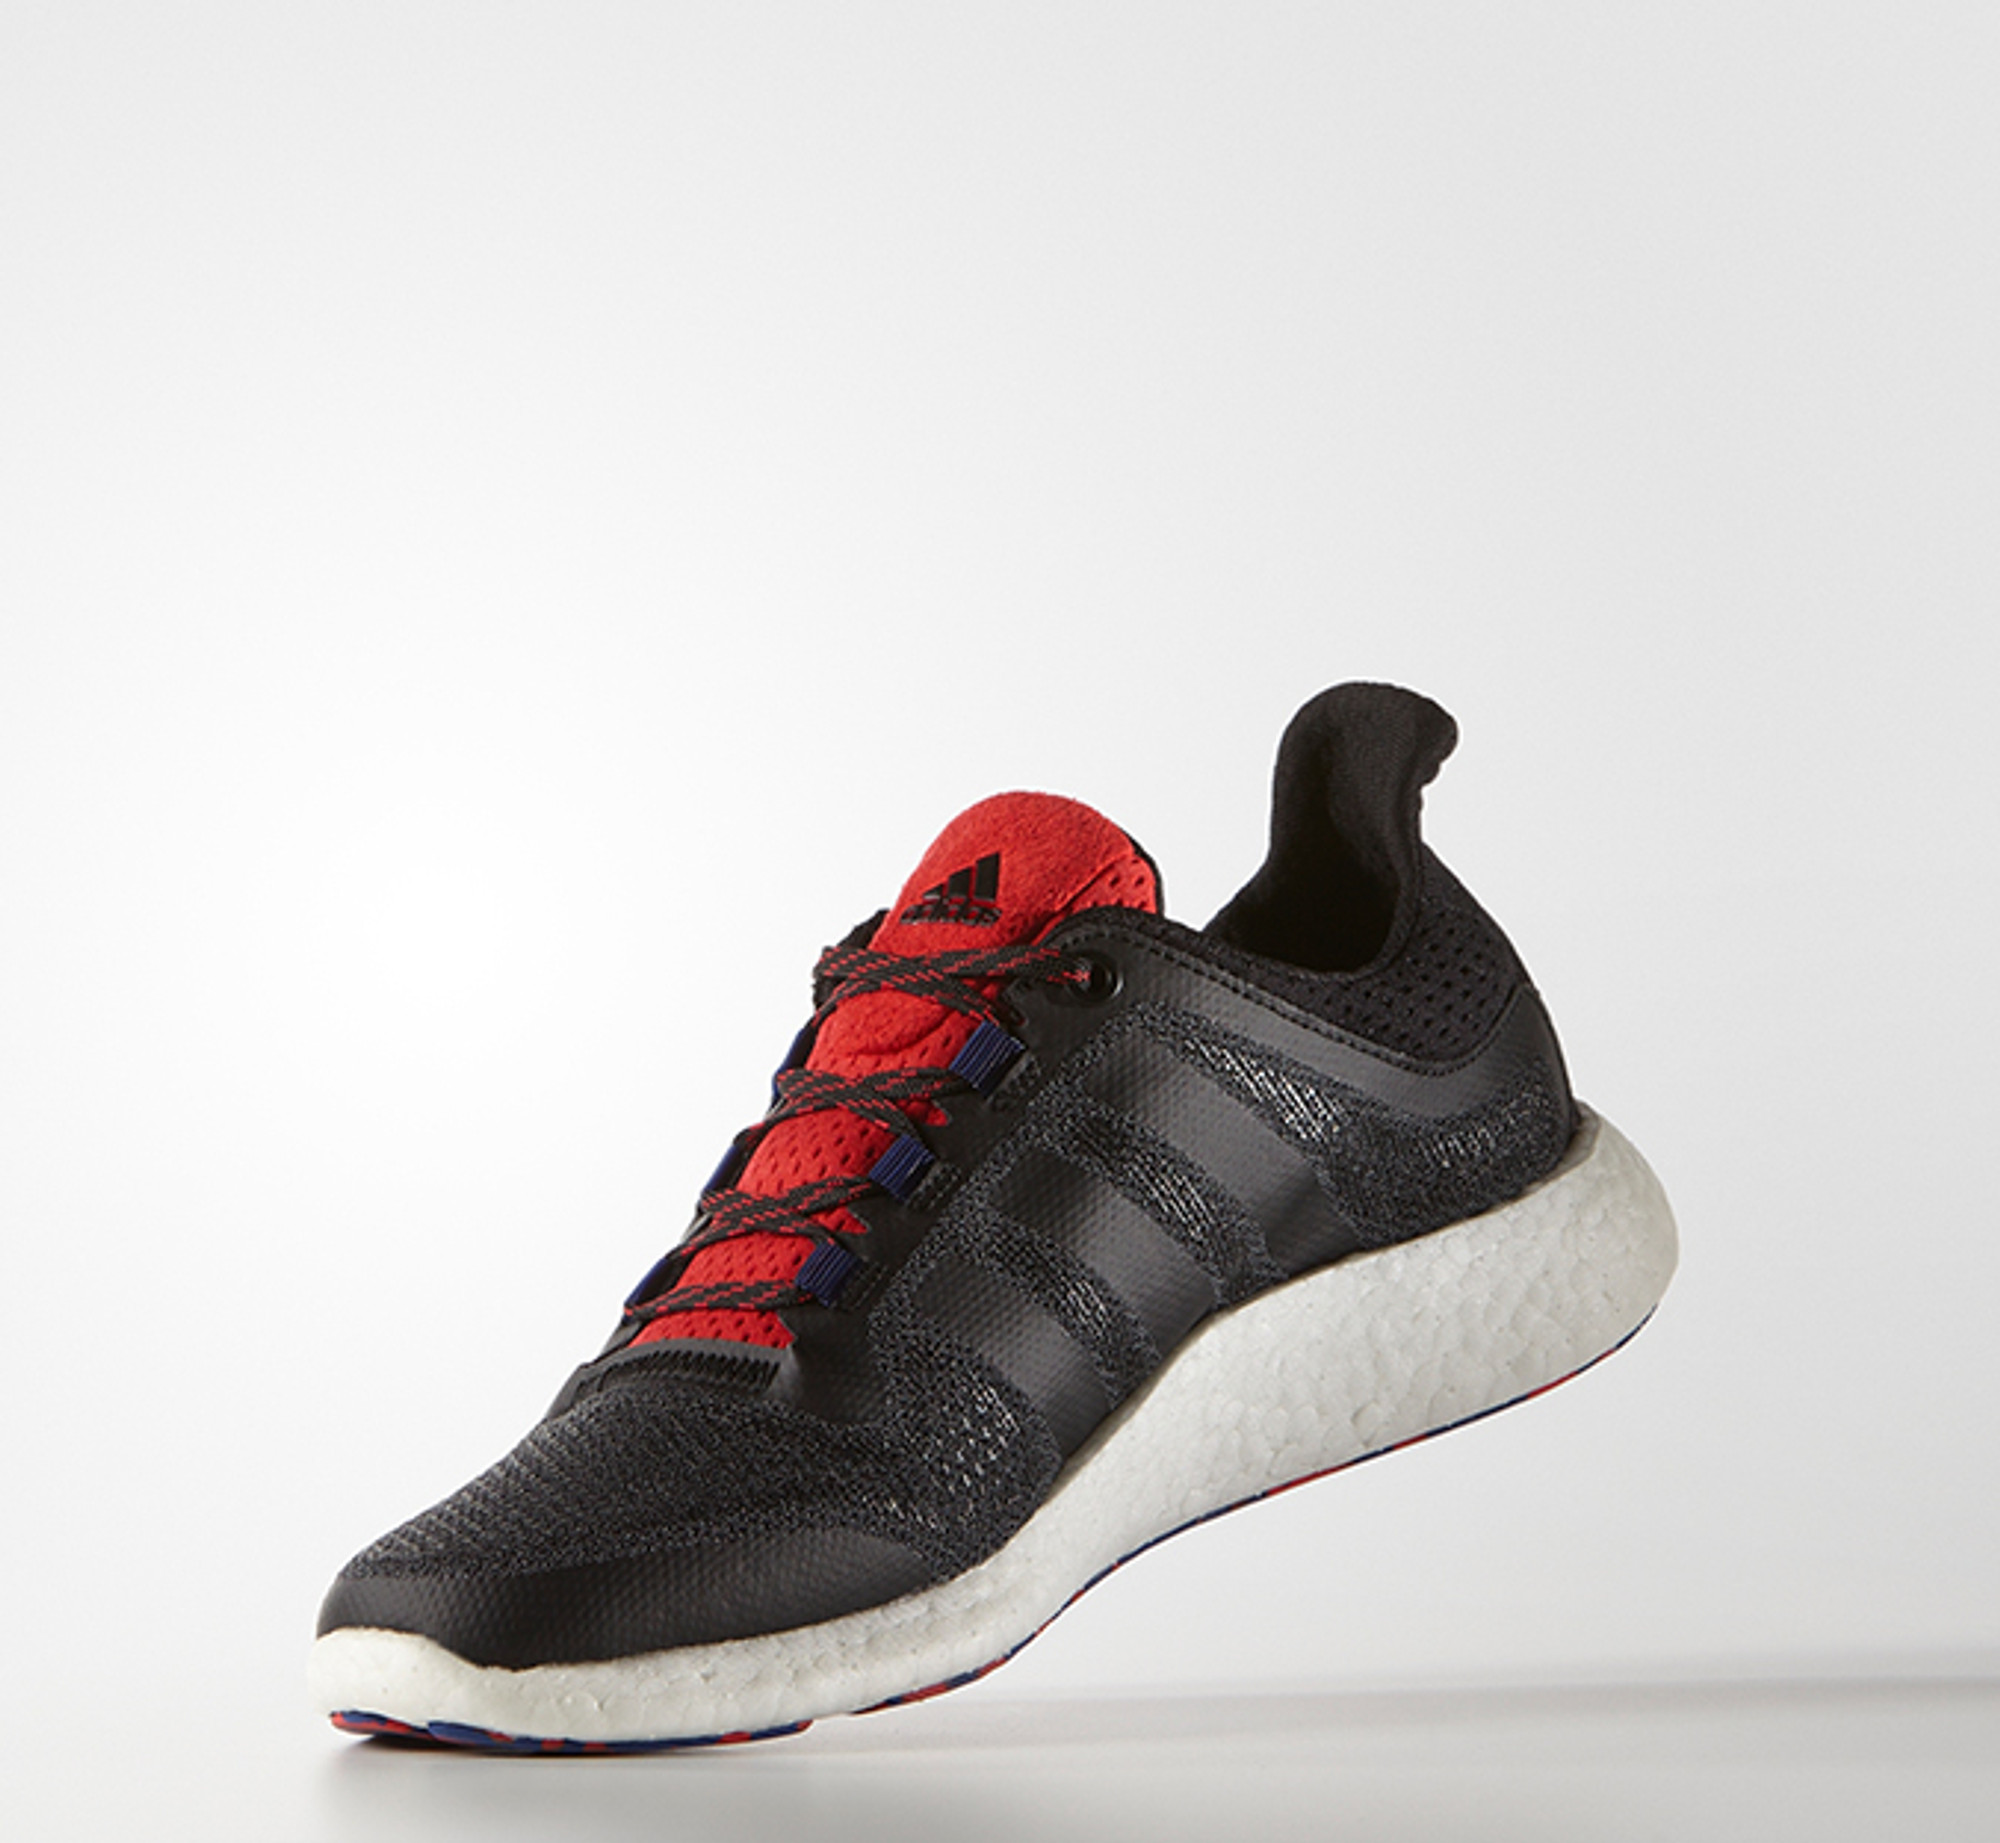 adidas pure boost 2 red